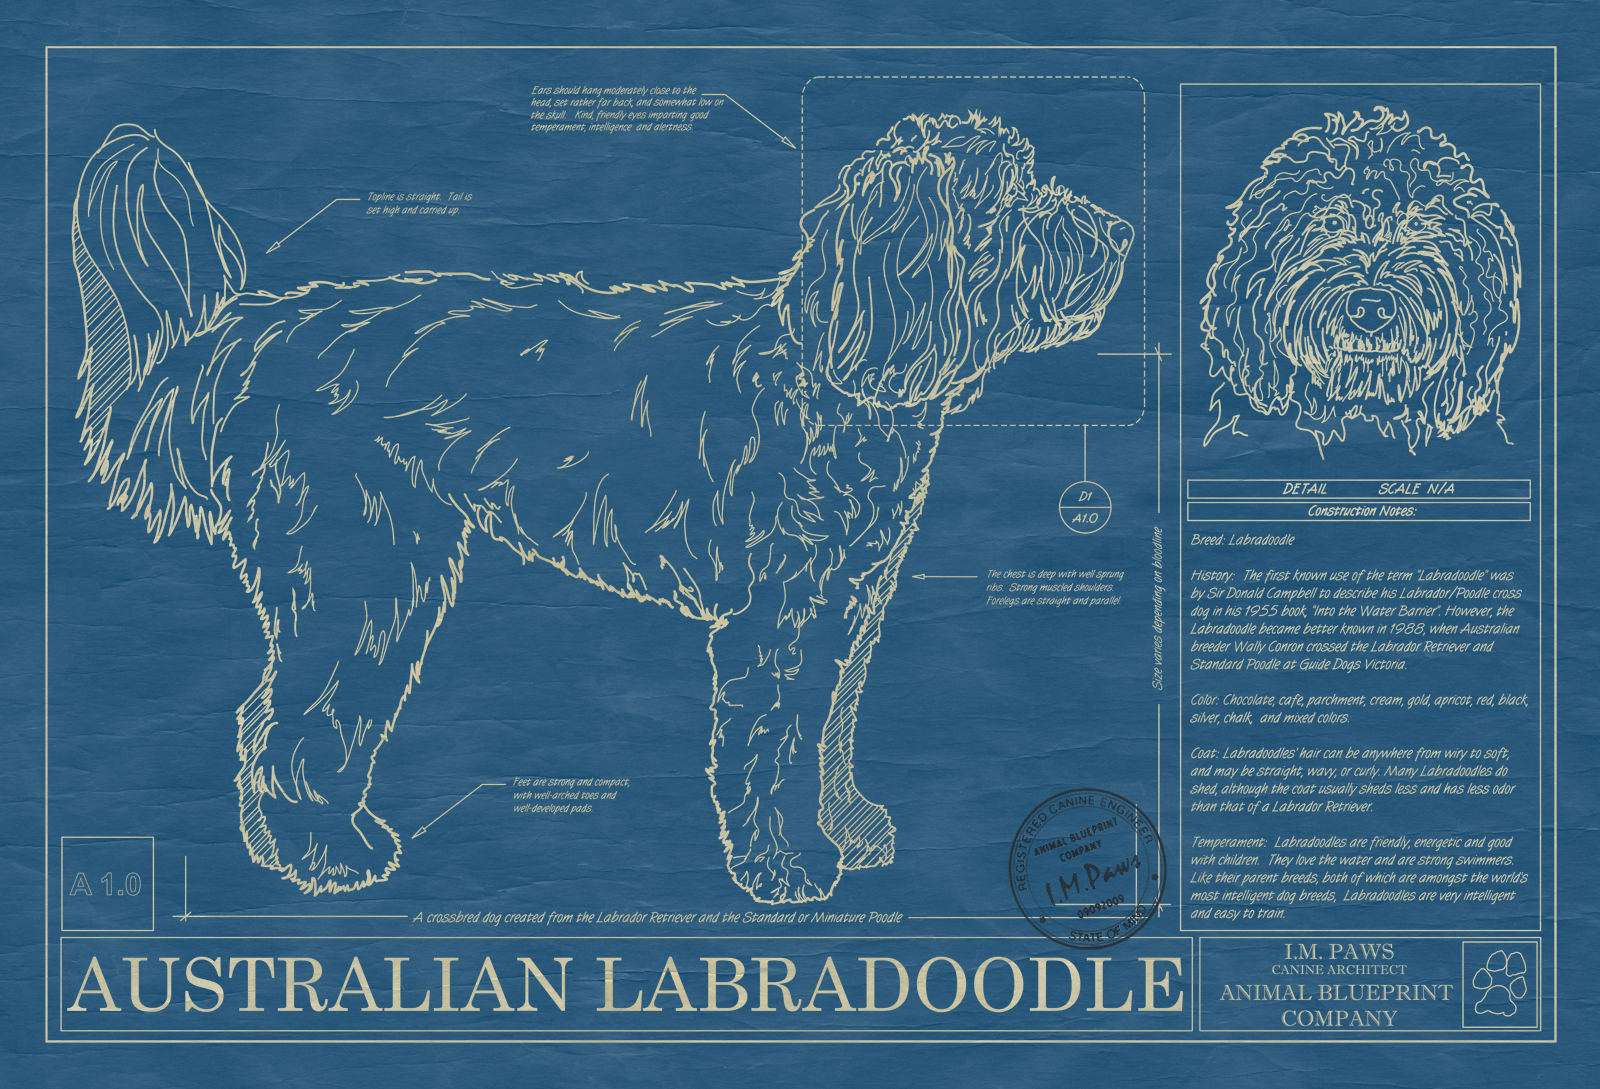 Australian Labradoodle Animal Blueprint Company